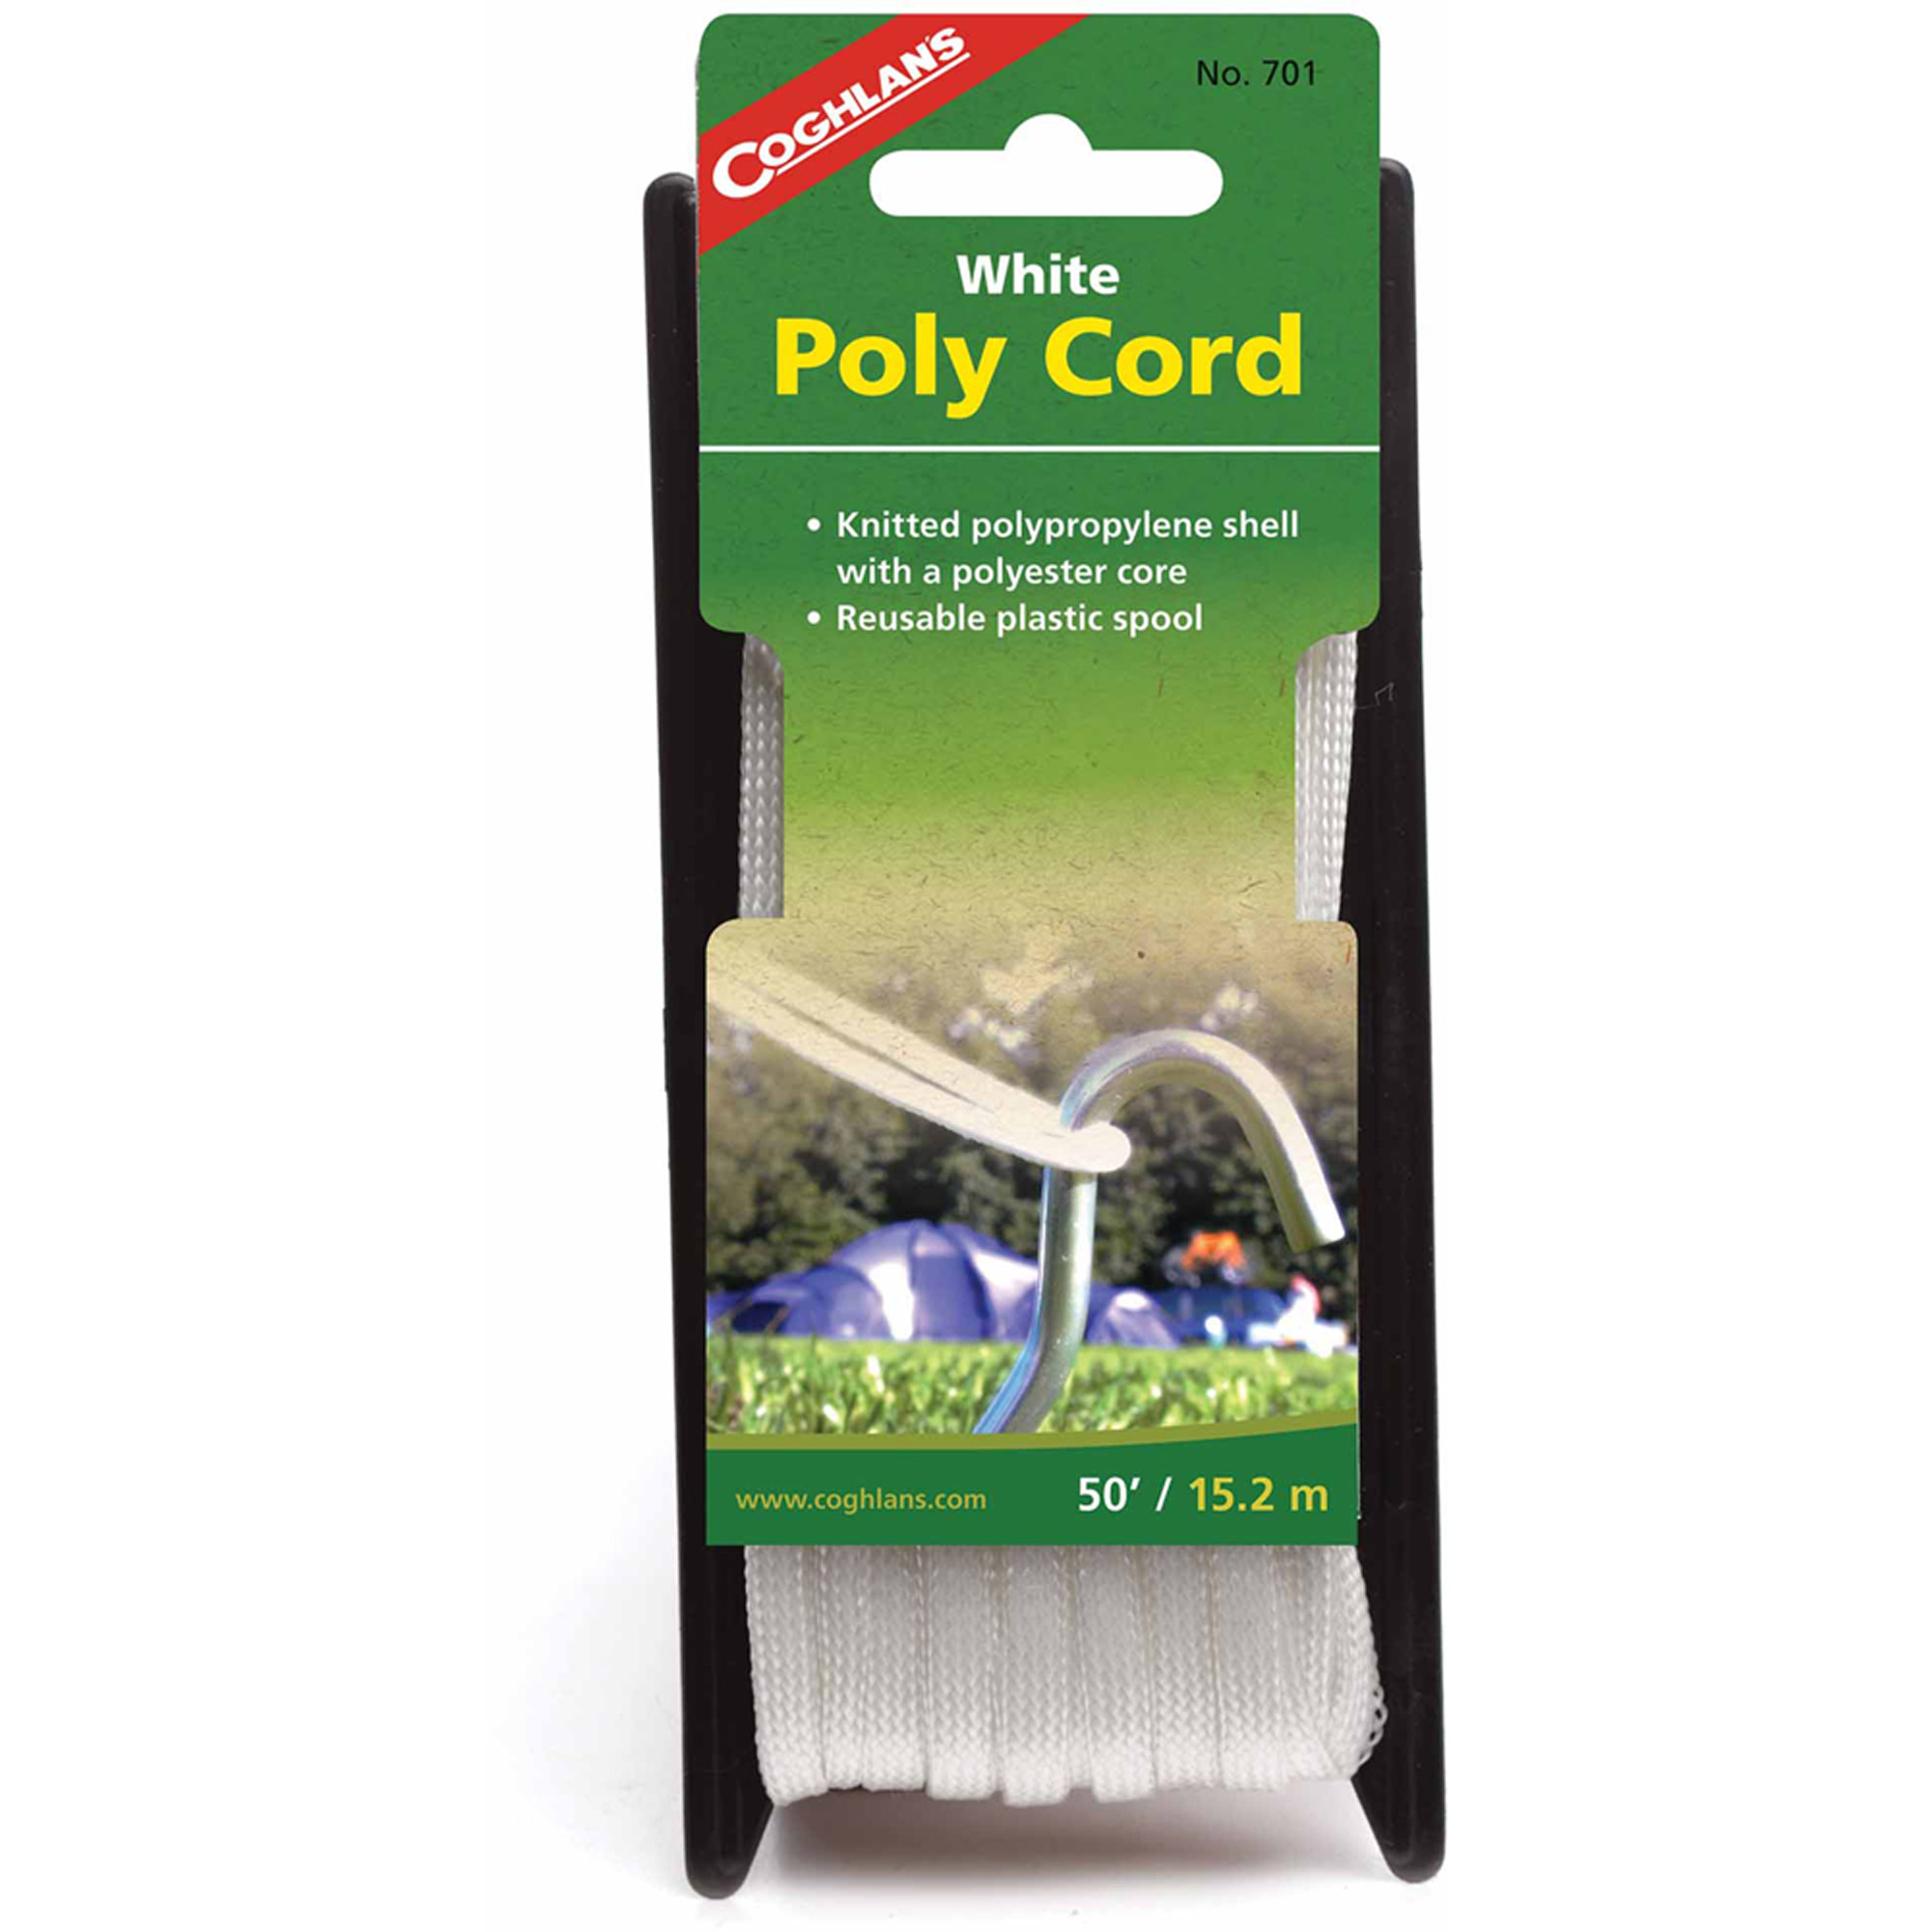 Coghlan's 701 Braided Poly Cord, 50'